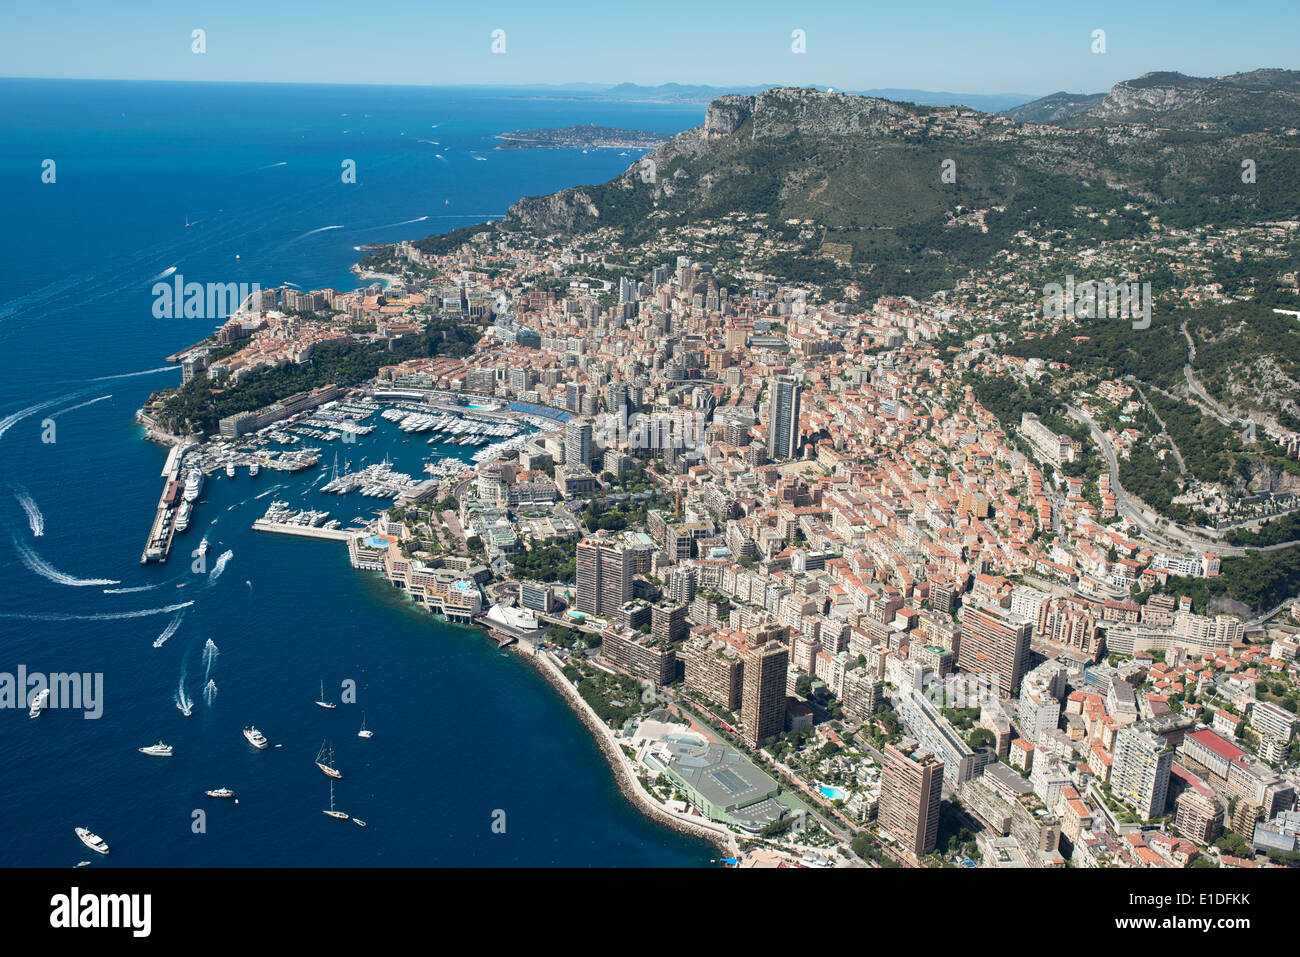 PRINCIPALITY OF MONACO (aerial view). - Stock Image